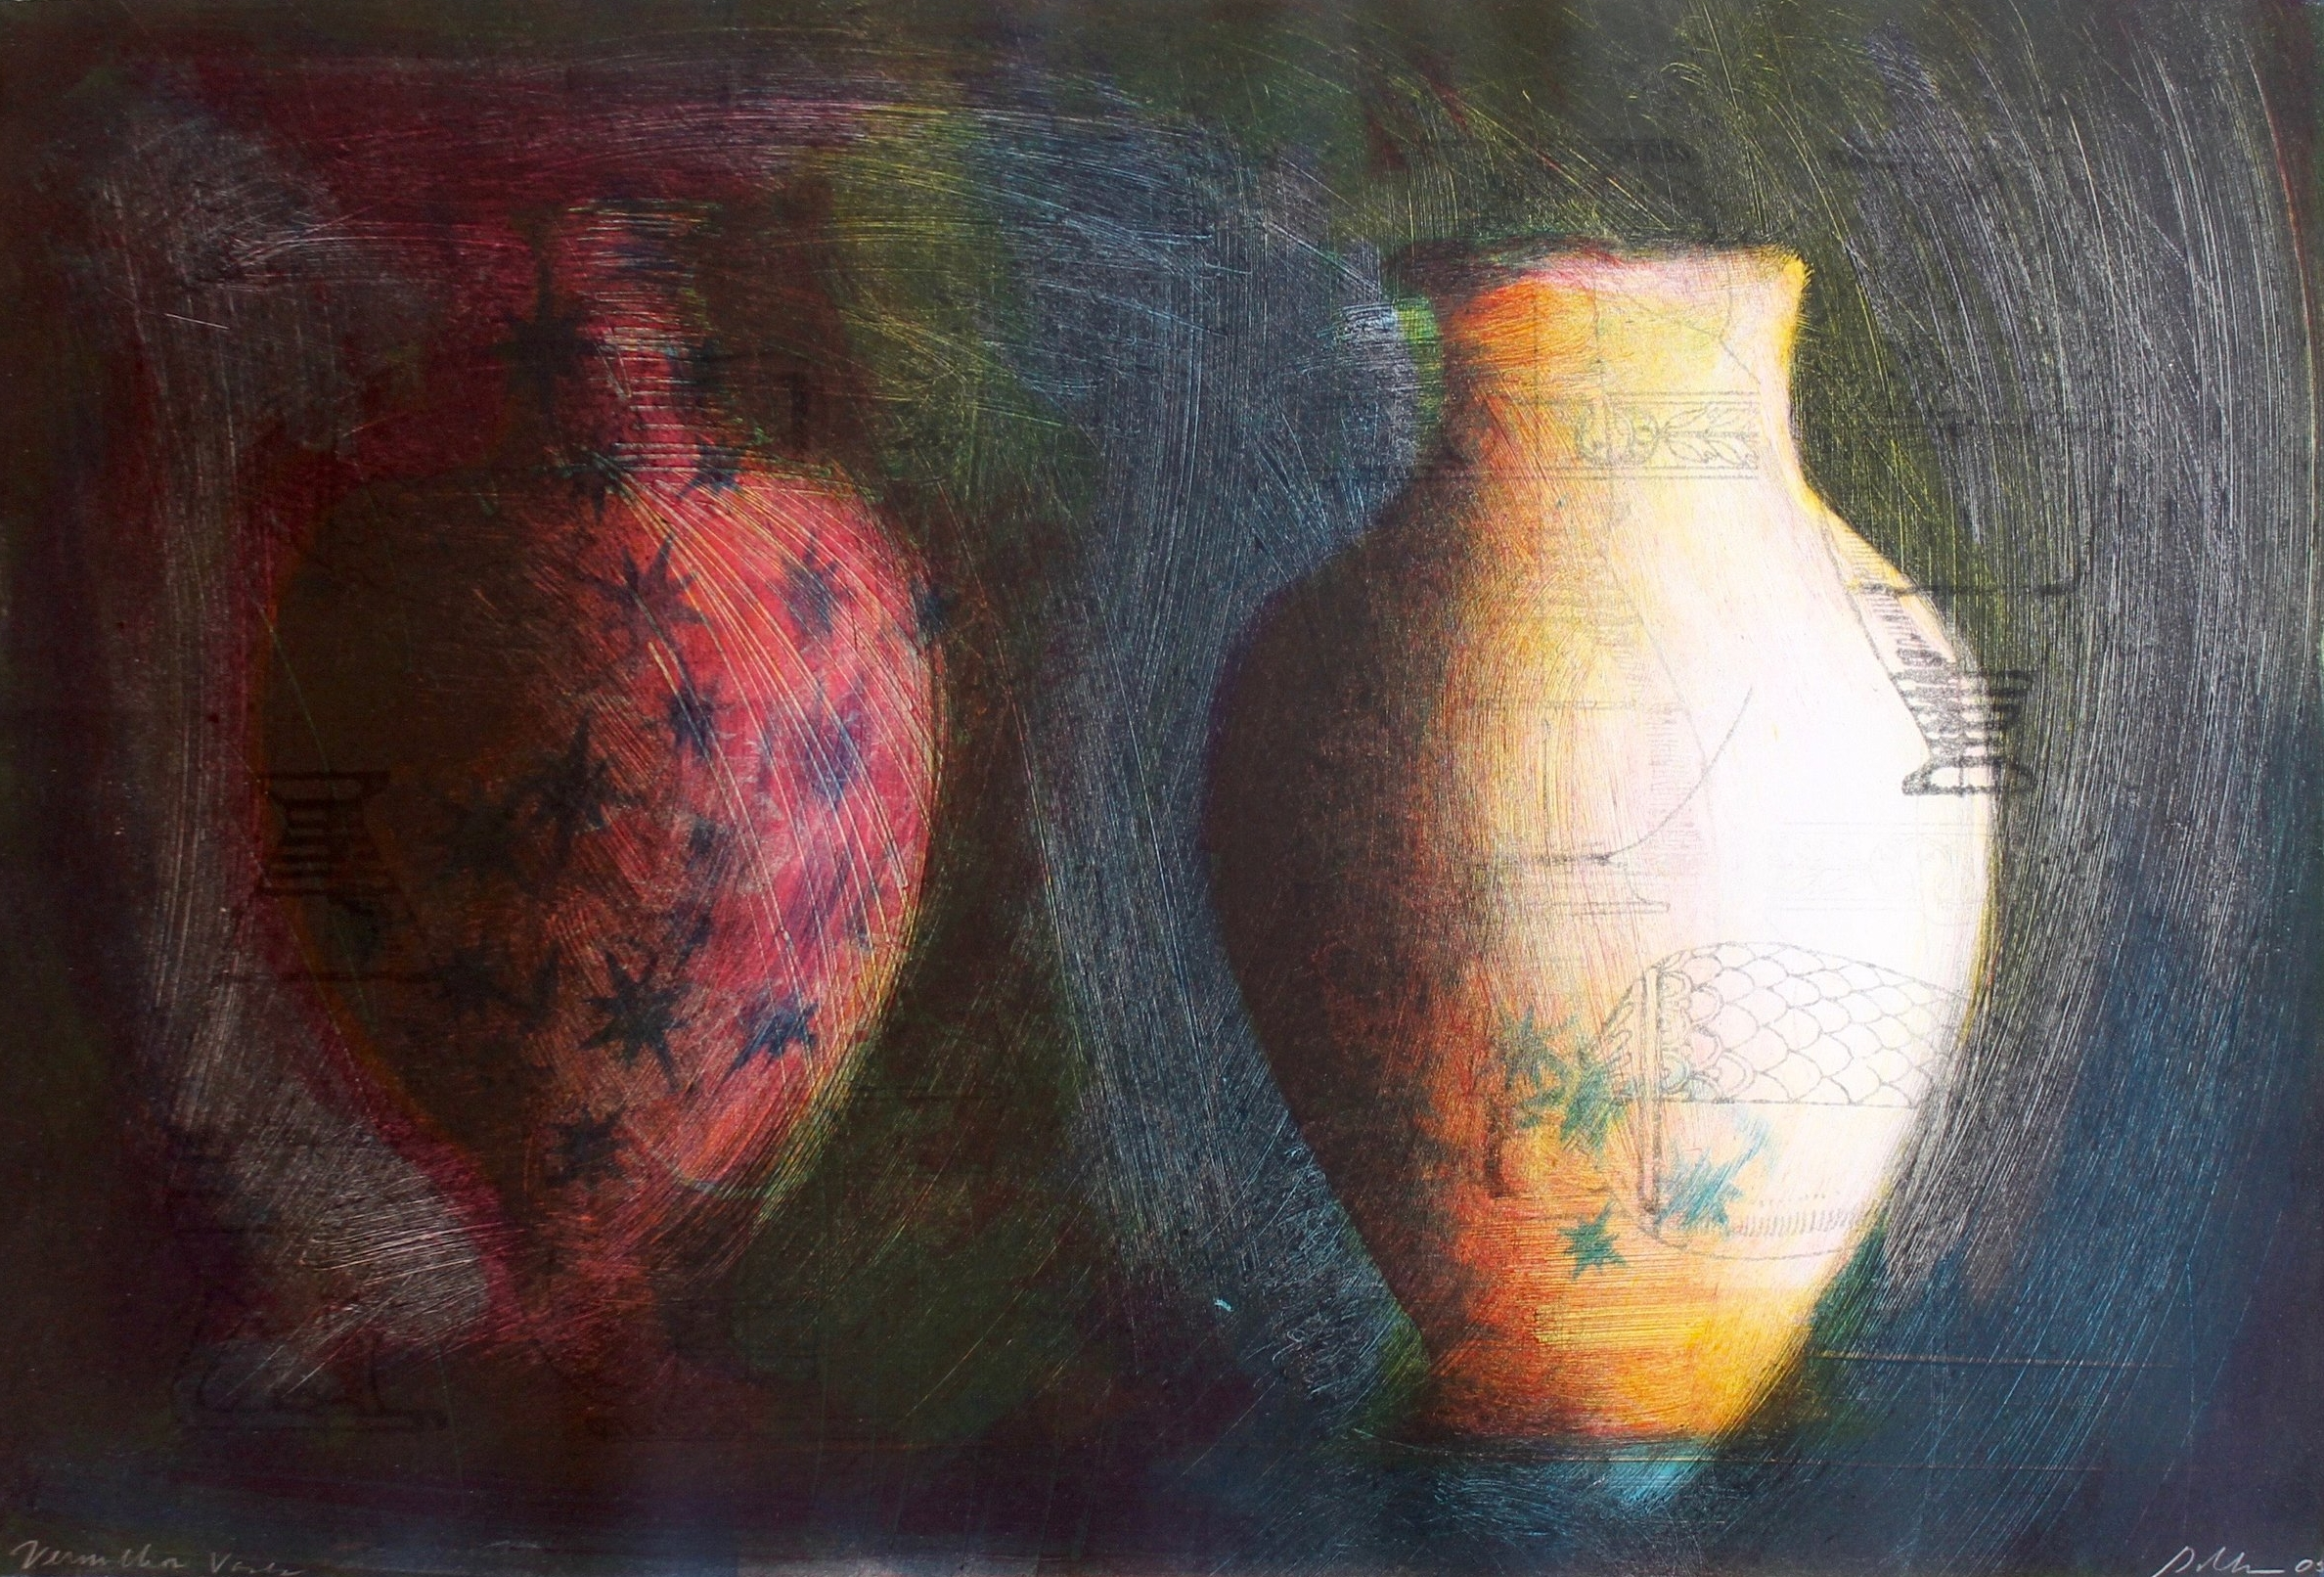 """Vermillion Vases"", Monotype print, 15x22.25 in."